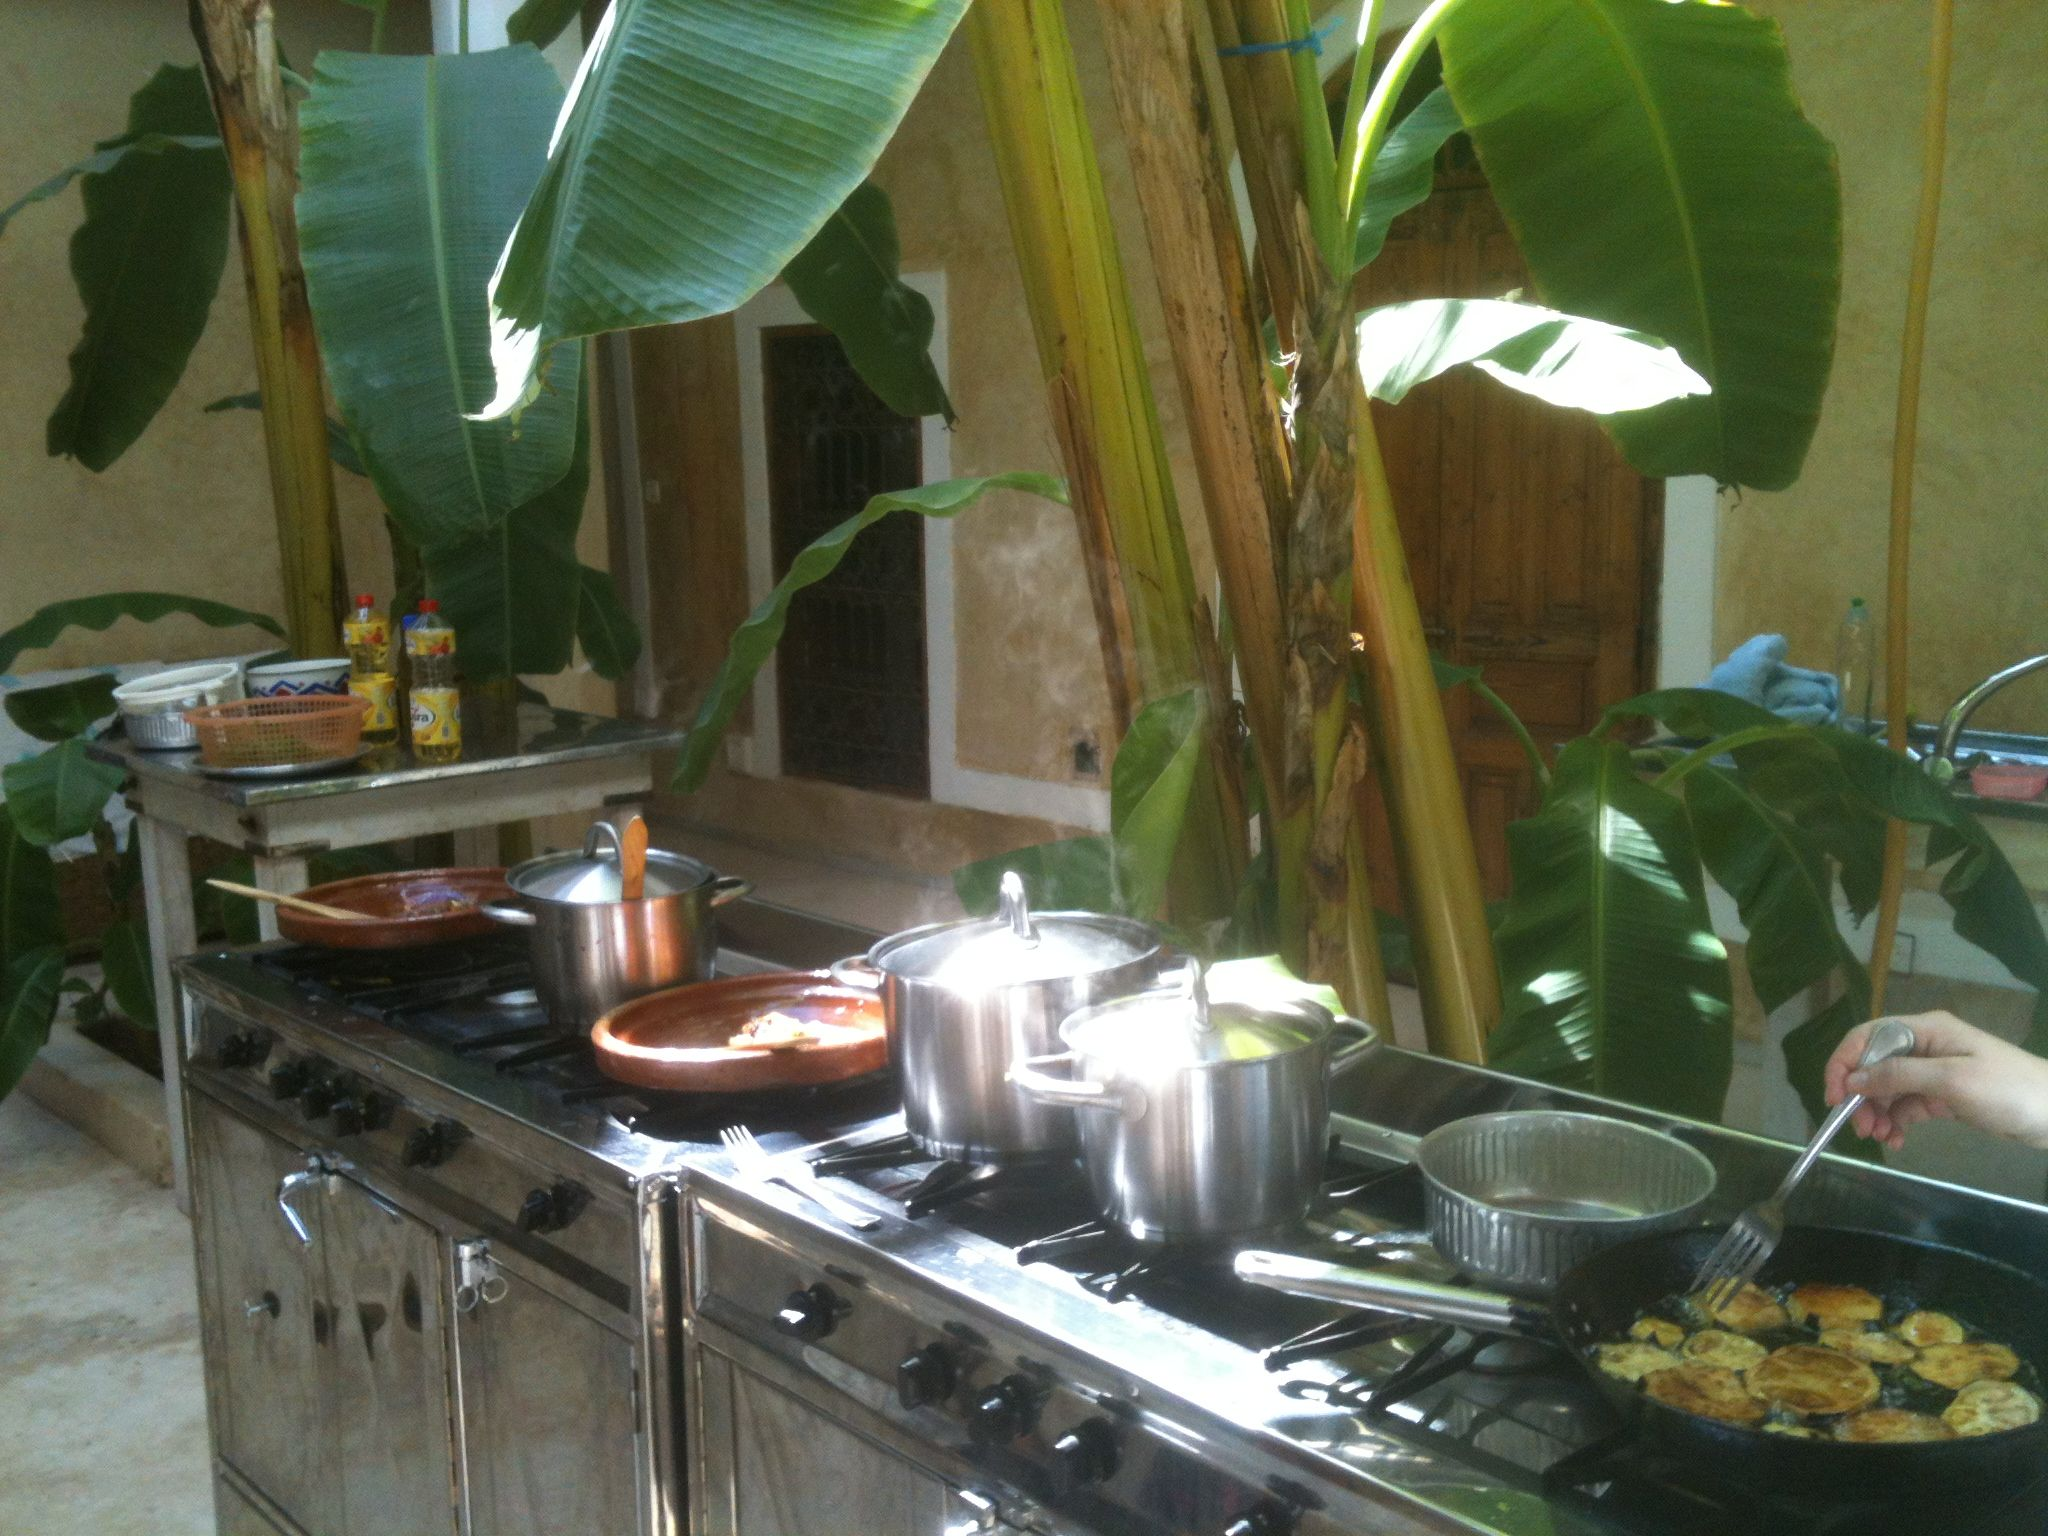 Our riad courtyard kitchen with Souk Cuisine